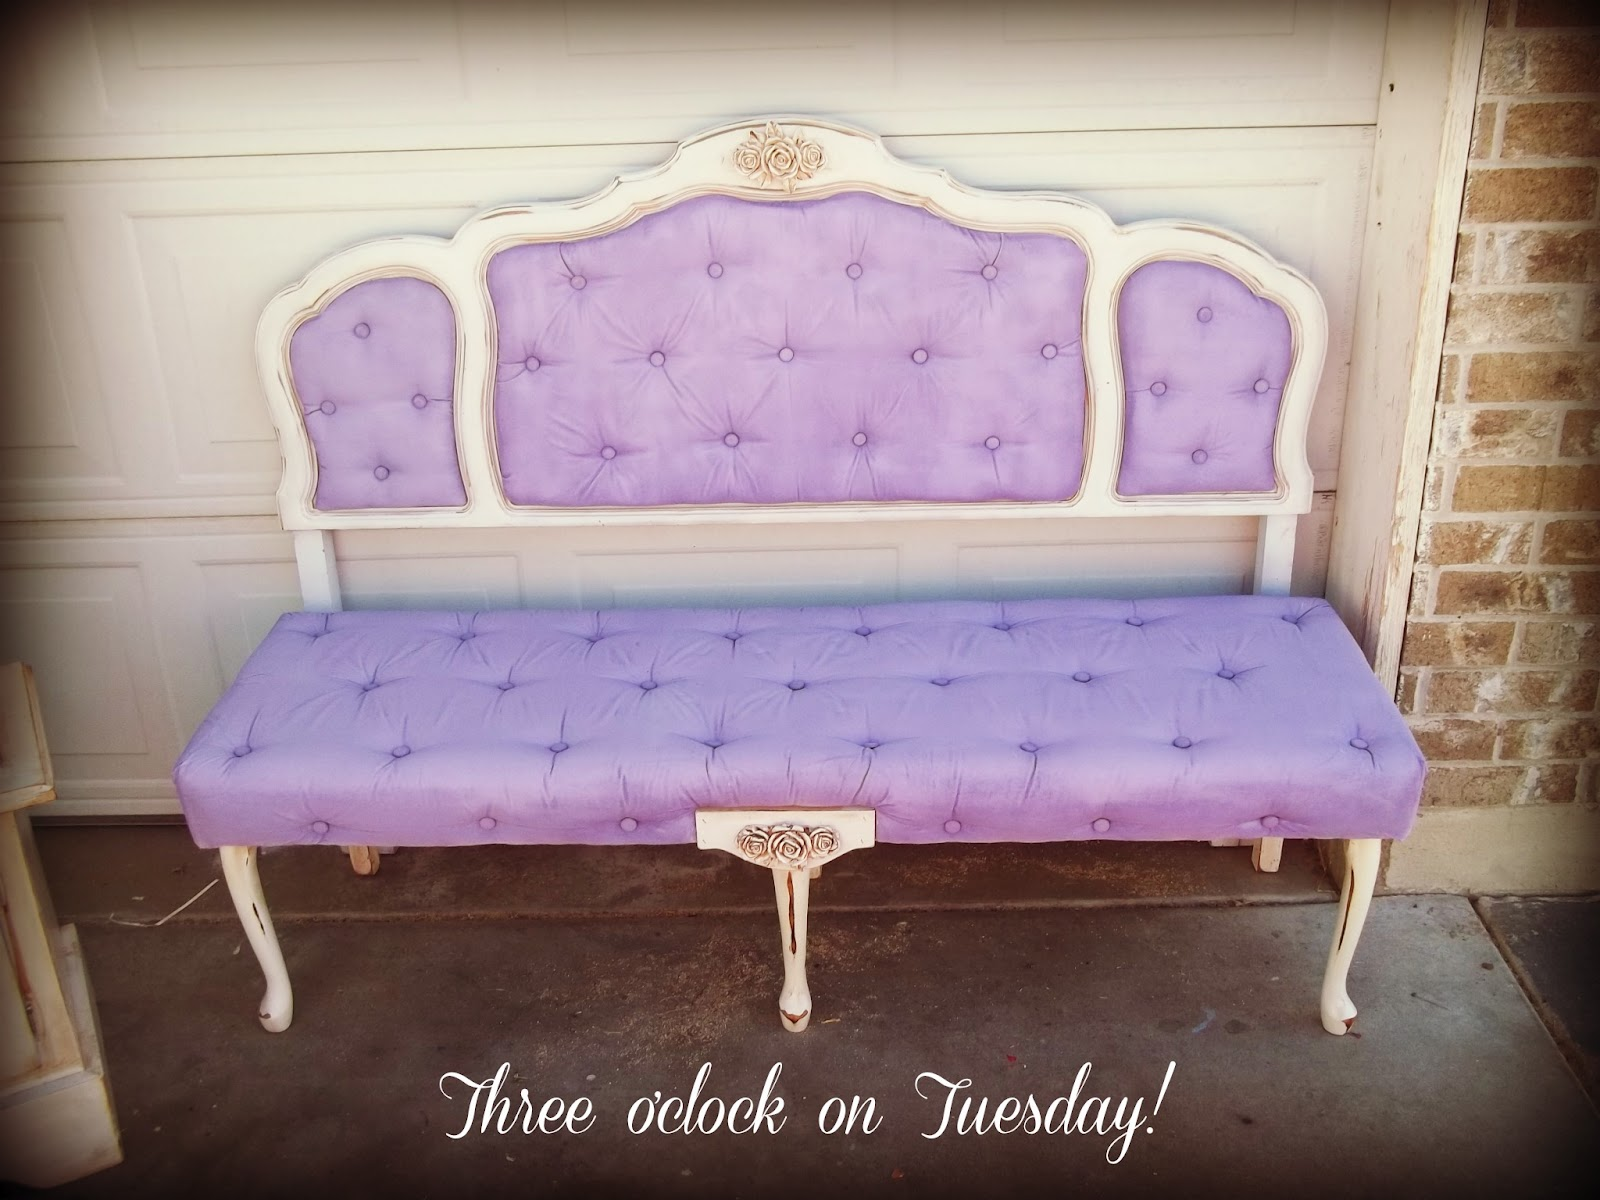 sold beautiful shabbychic full size headboard and bedend bench